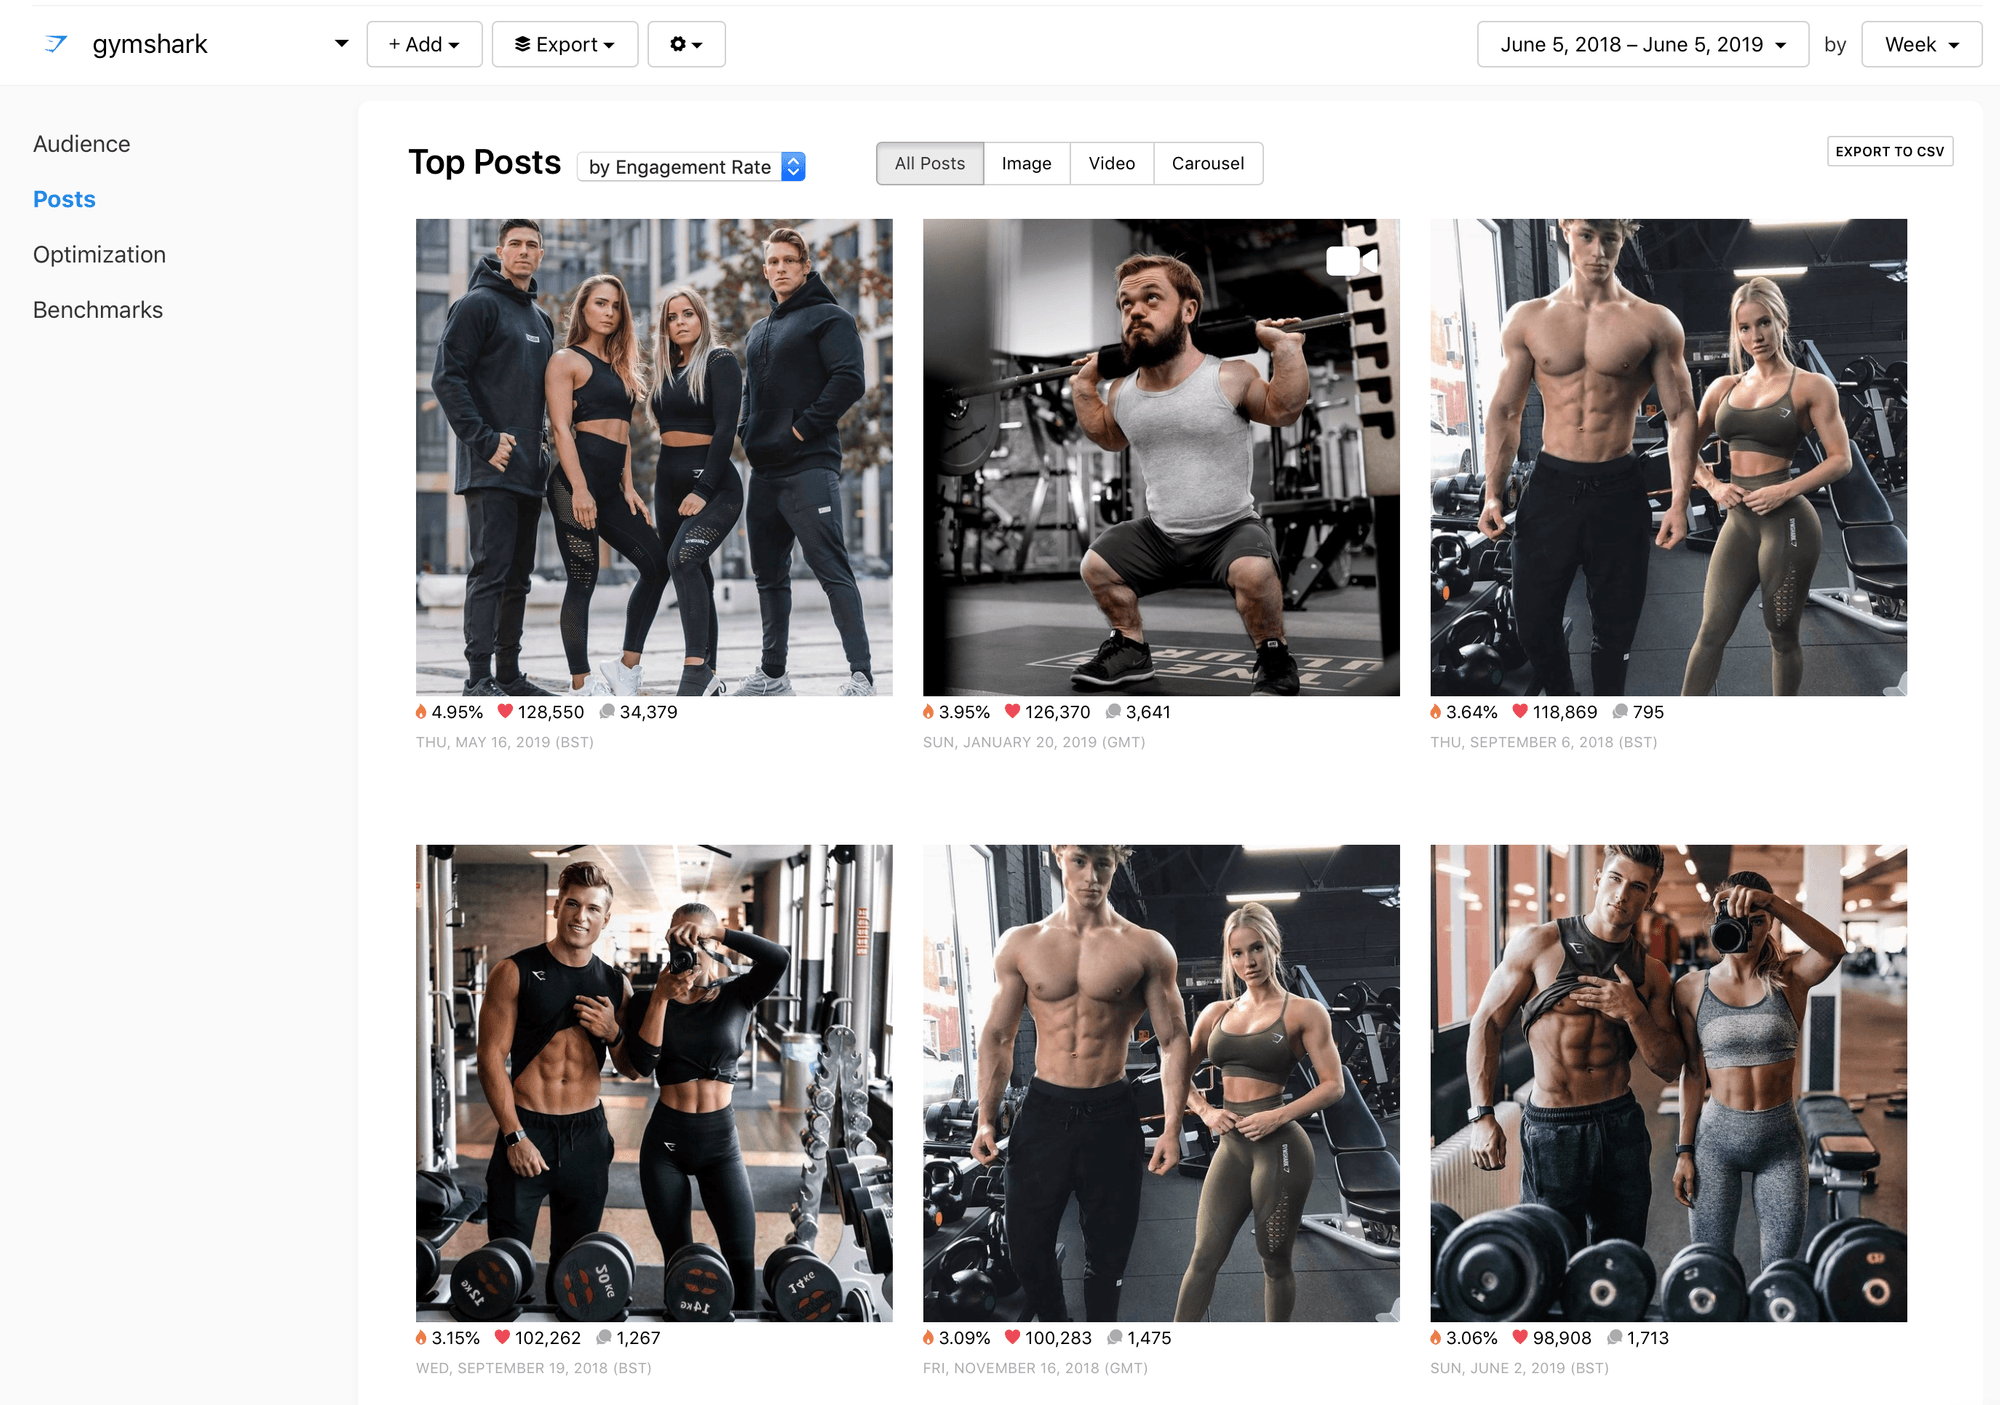 @gymshark Top Posts (by Engagement Rate) graph by Minter.io